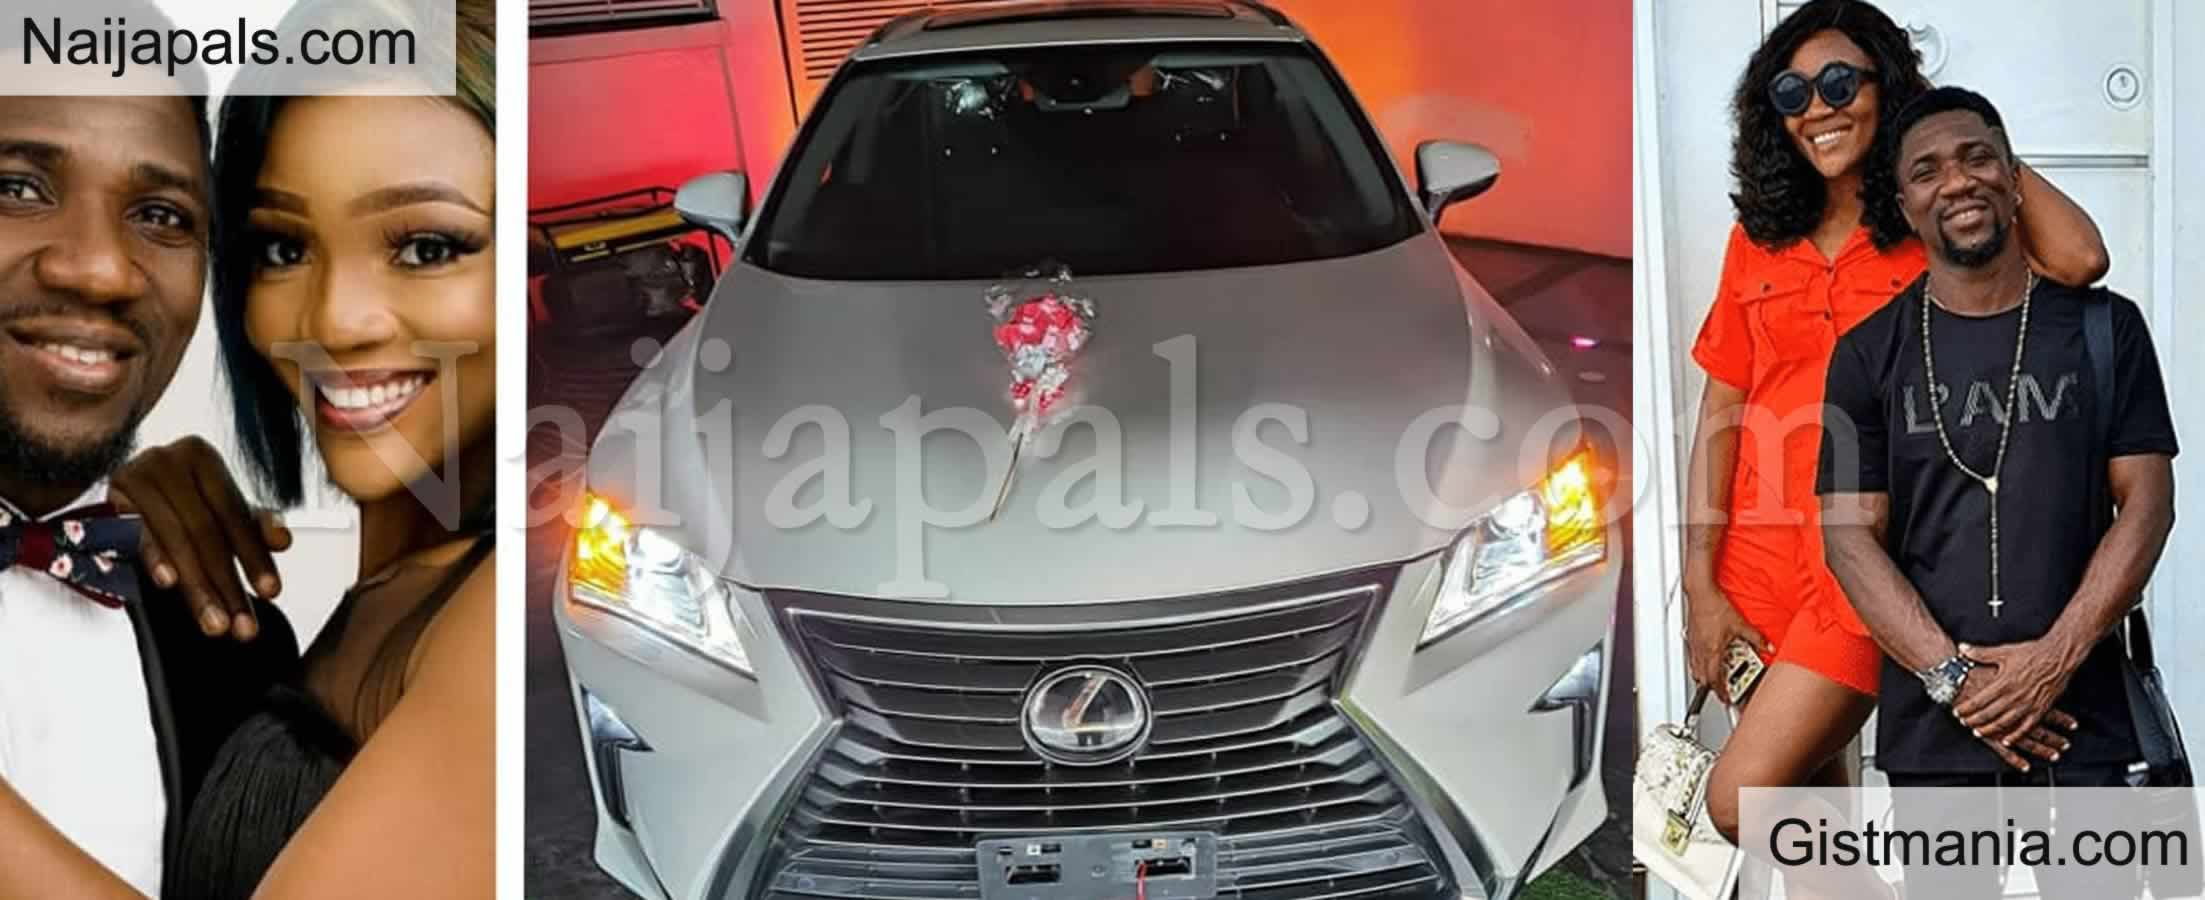 <img alt='.' class='lazyload' data-src='https://img.gistmania.com/emot/love.gif' /> <b>Nigerian Comedian Ogusbaba Surprises His Wife With a Lexus SUV</b> (Photos)